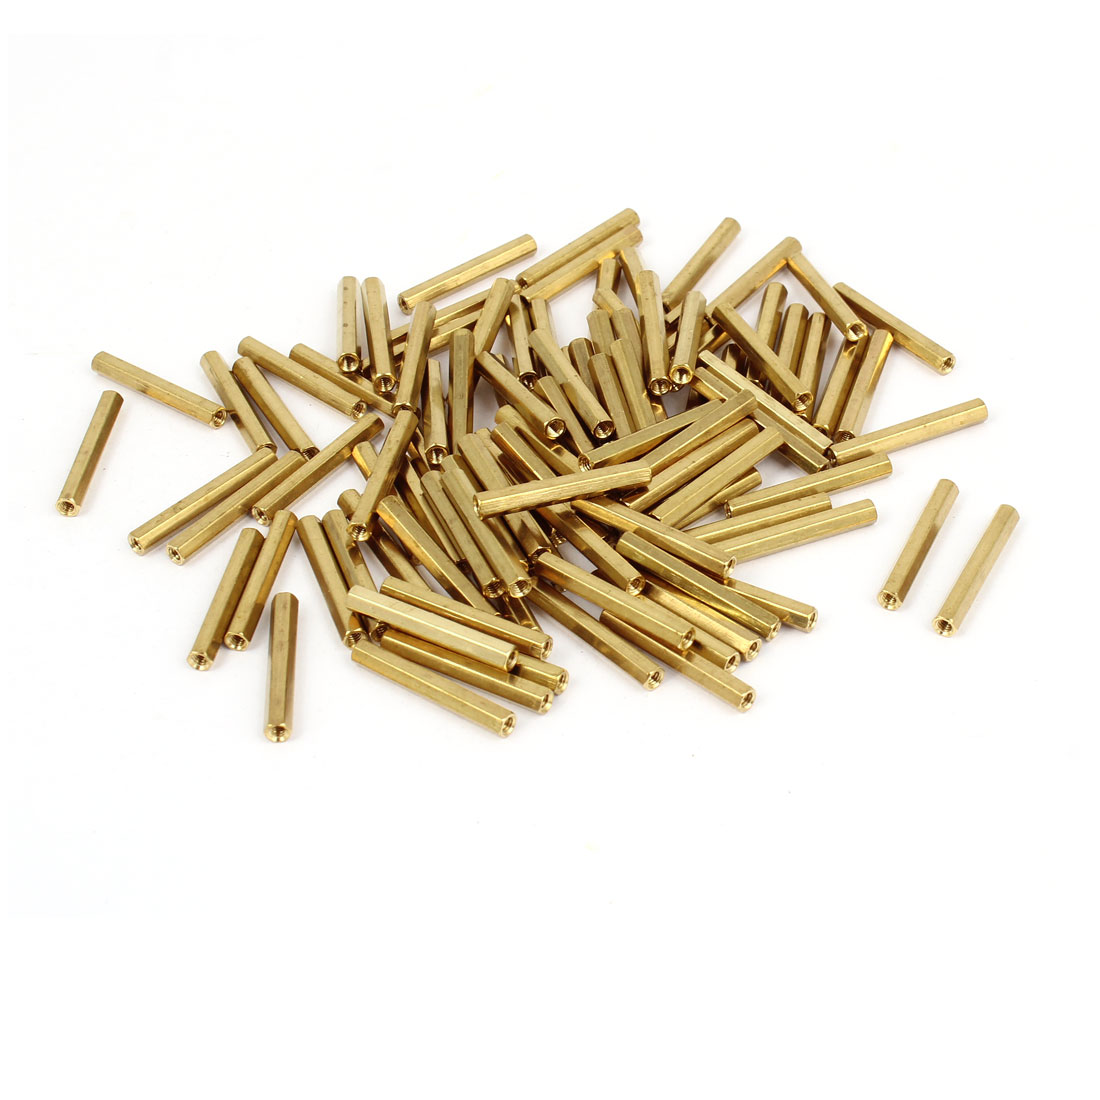 100 Pcs M2 x 22mm Gold Tone Dual Ends CCTV Camera Standoff Hexagonal Nut Spacer